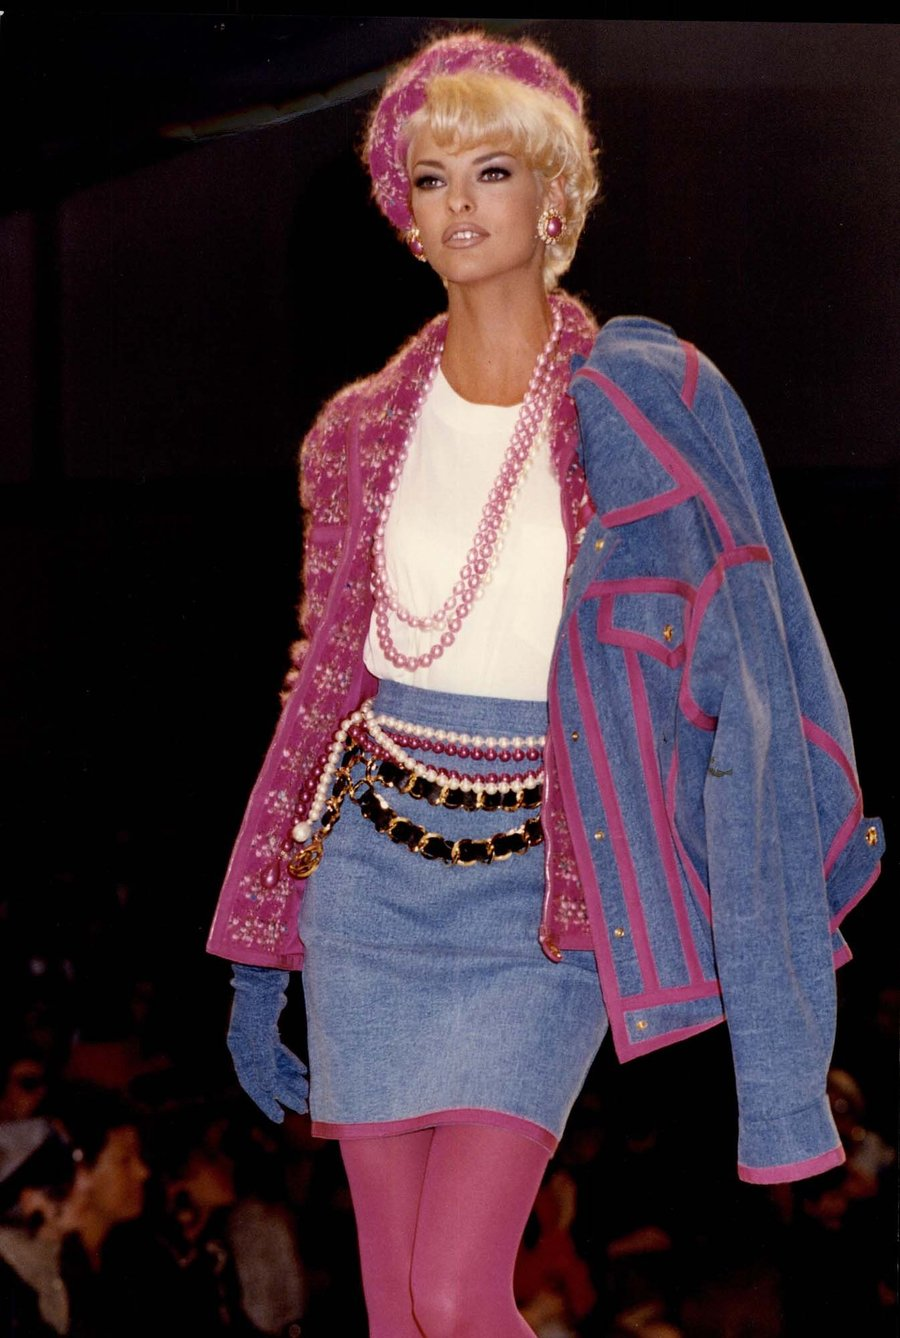 Linda Evangelista for Chanel in 1991